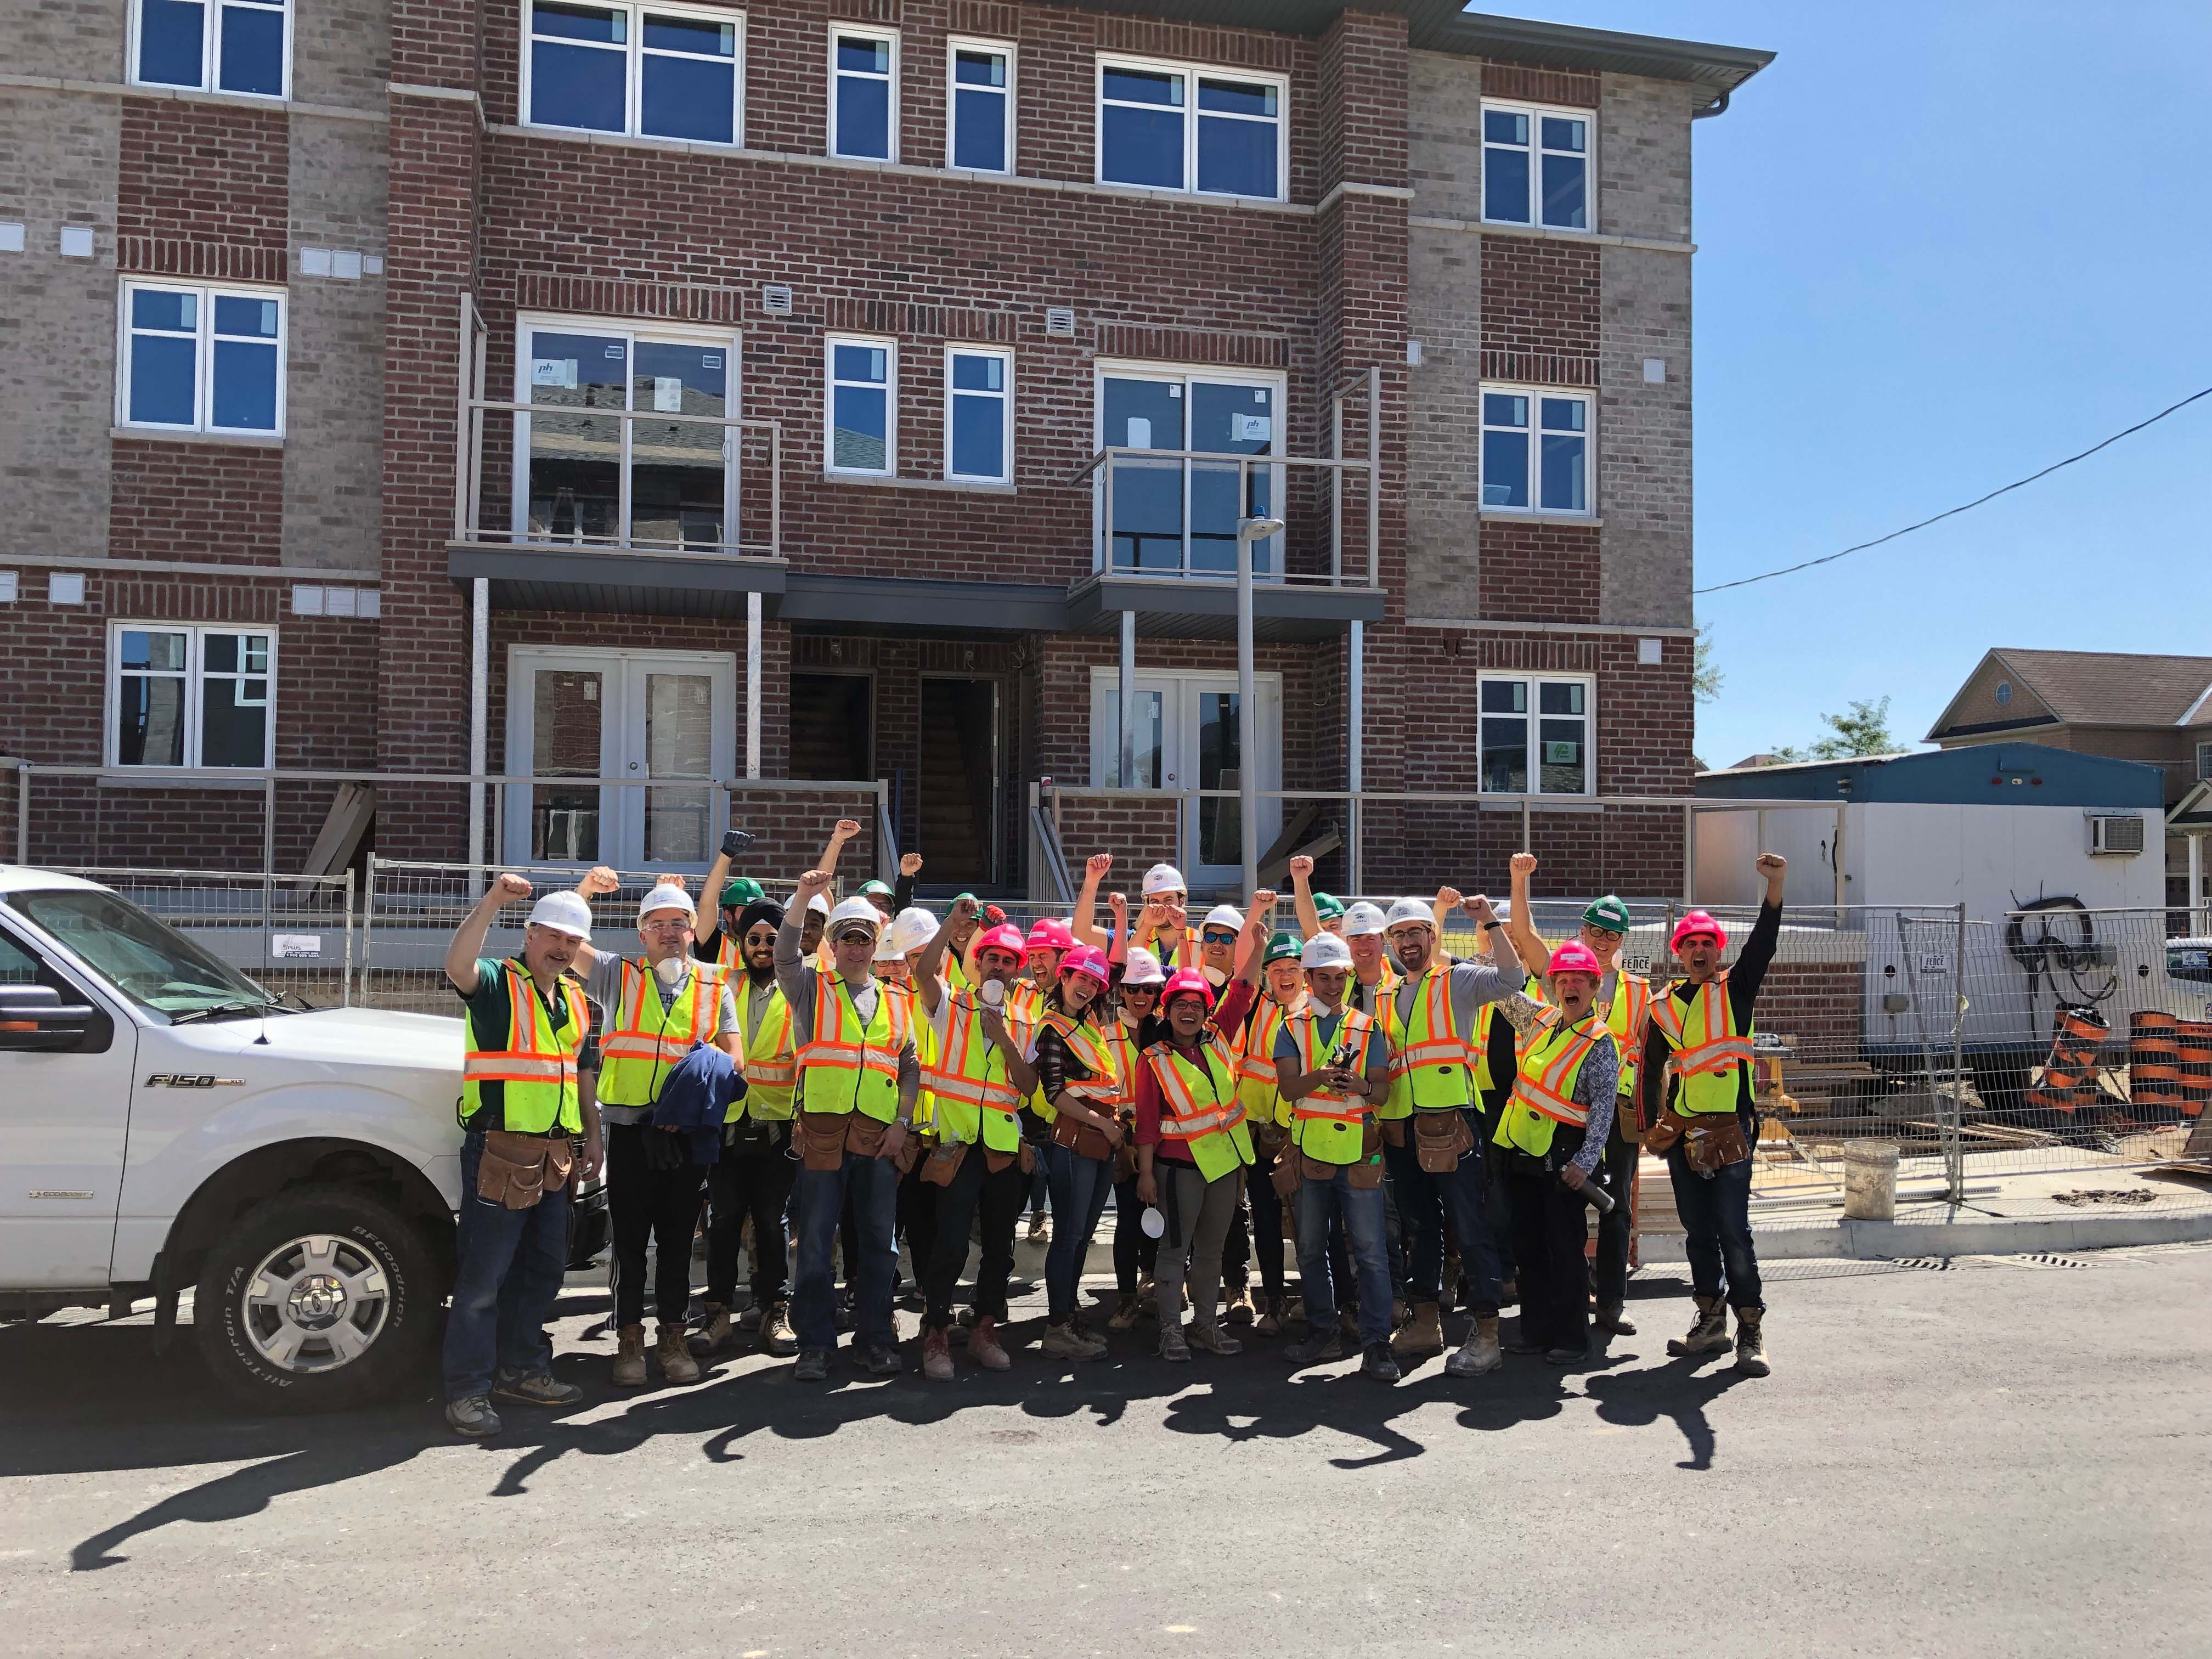 Prime Quadrant team members posing at a volunteering event wearing construction gear